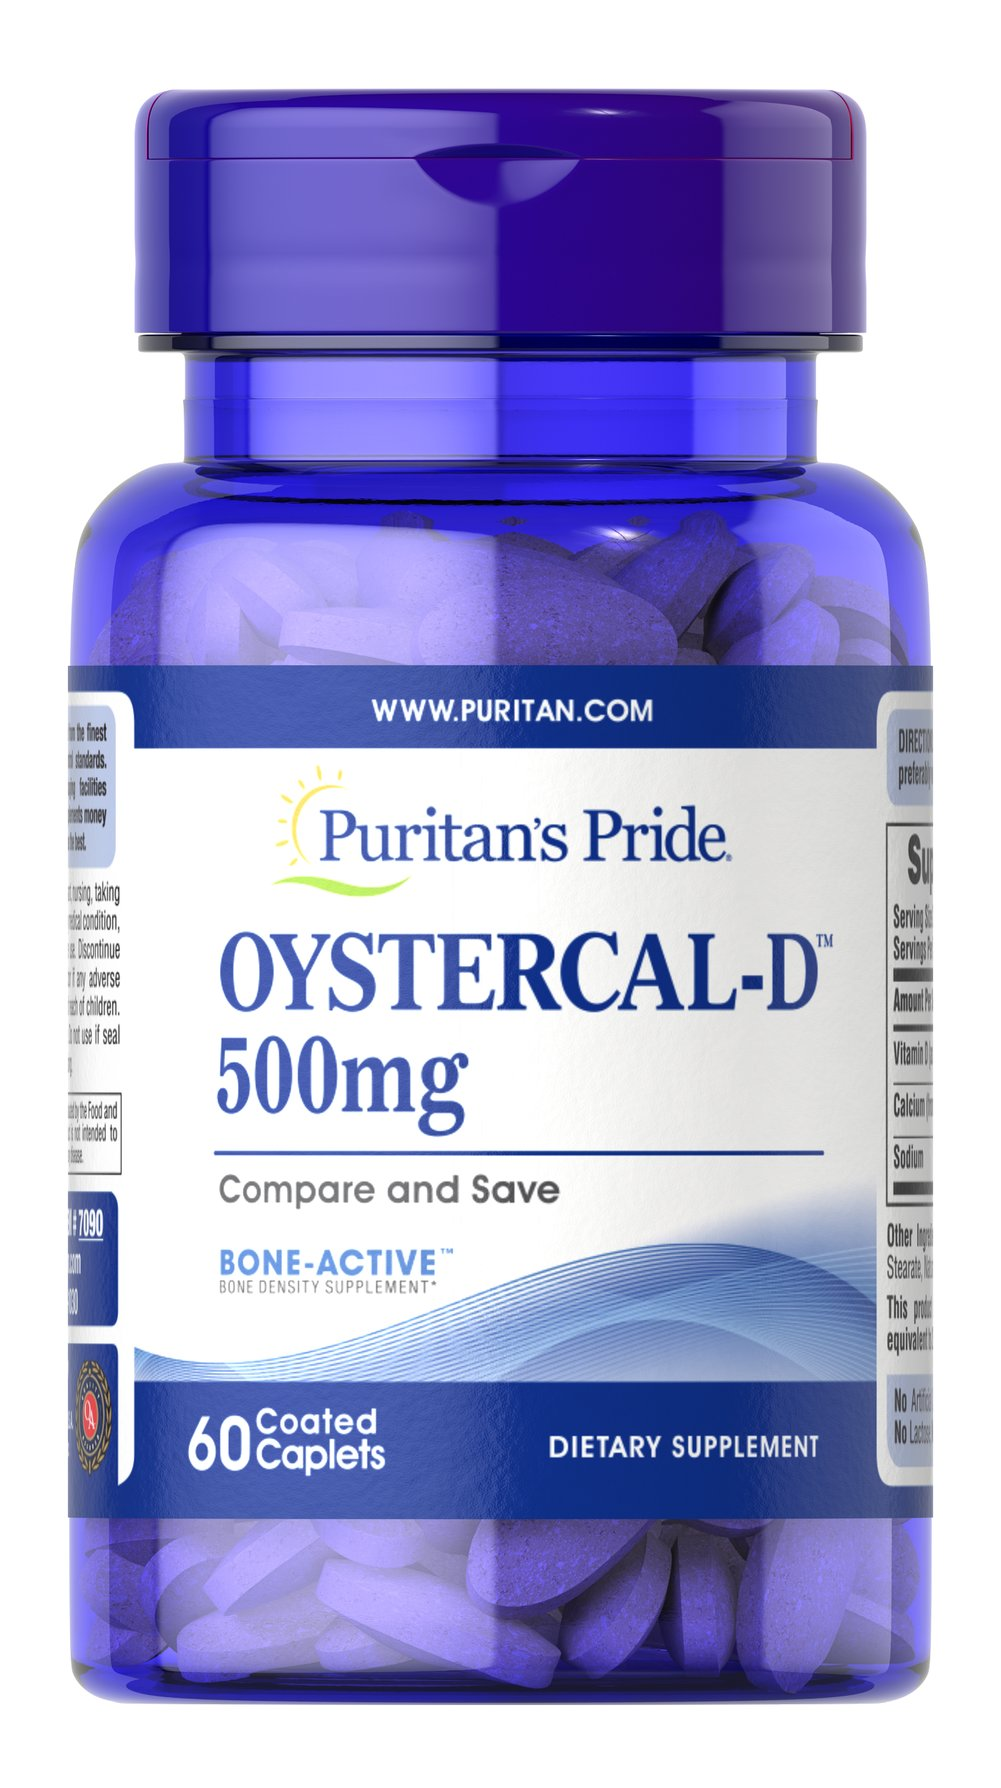 Oystercal-D™ 500 mg <p>It's time to bone-up on bone health! Our Oyster-Cal formula is a good choice for helping your maintain bone health.** It's sourced from oyster shells and delivers 1,000 mg of Calcium per serving, with the added value of Vitamin D to assist with absorption.**</p> 60 Caplets 500 mg $5.49